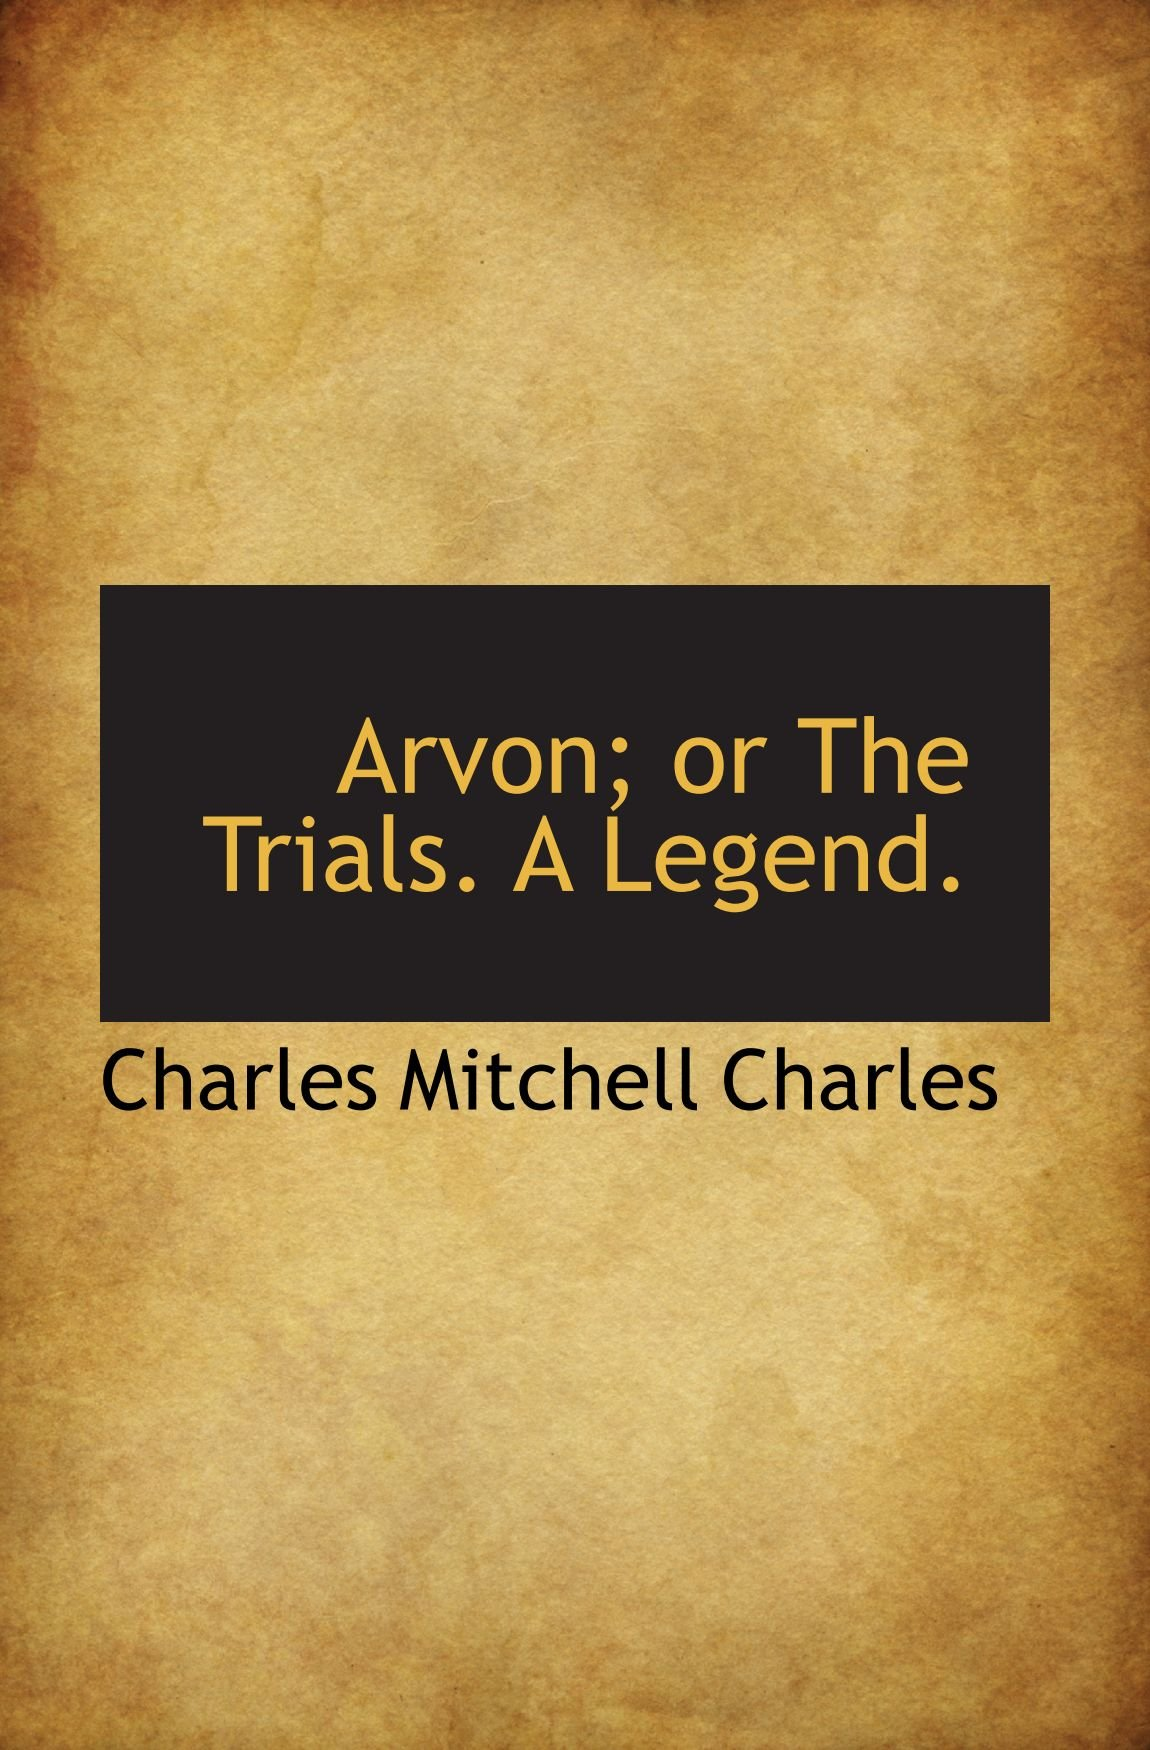 Arvon; or The Trials. A Legend. PDF